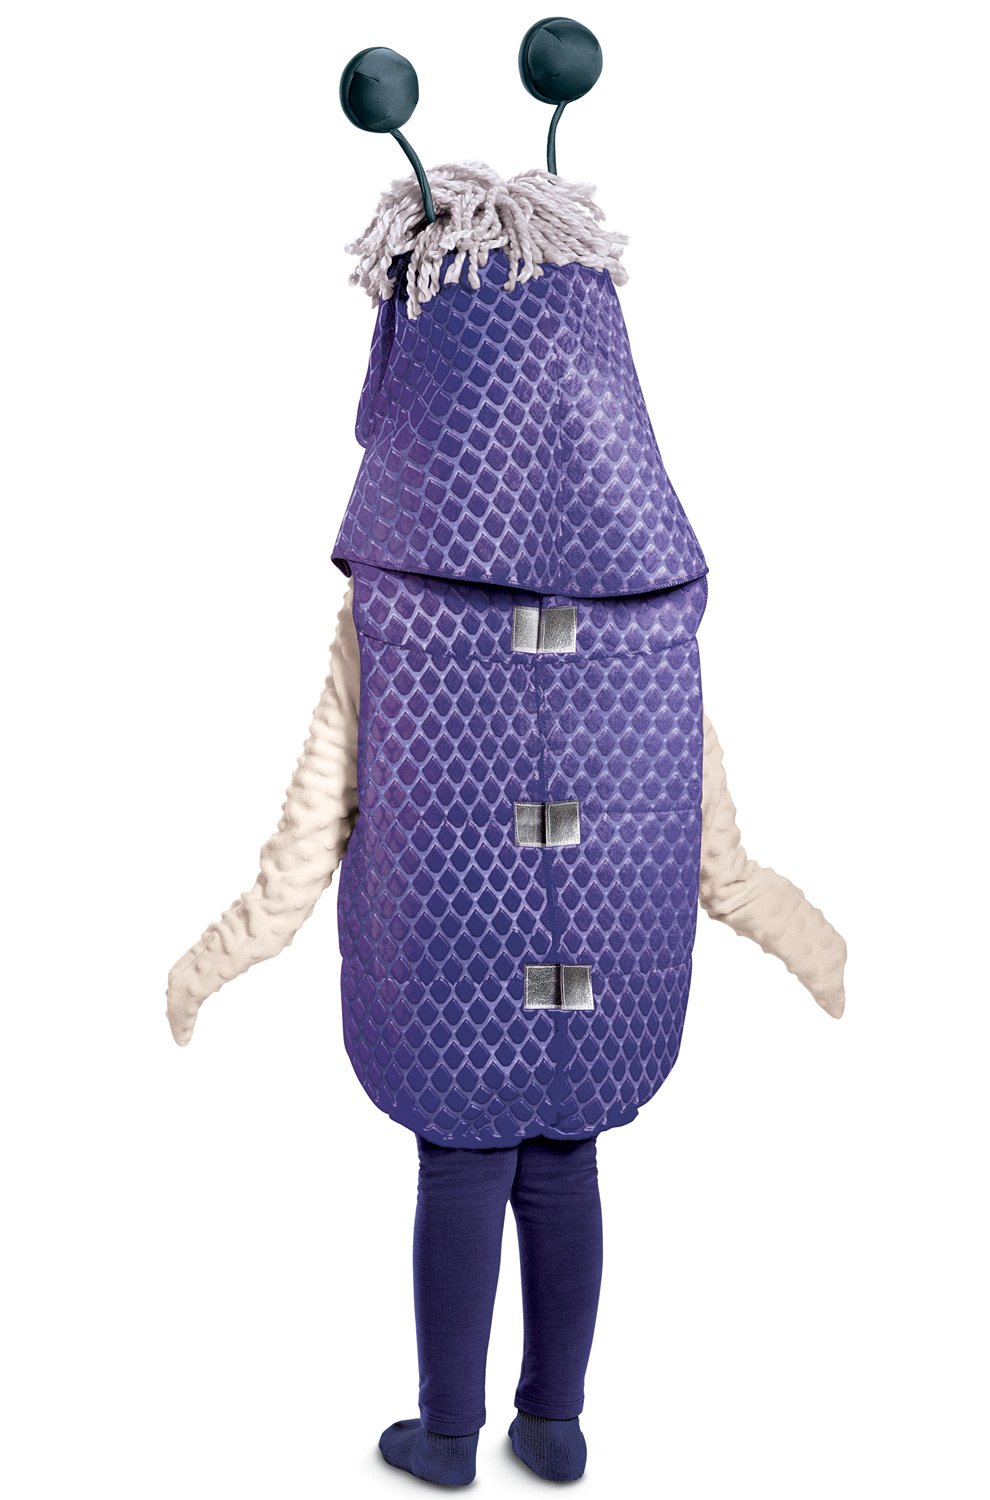 Boo Deluxe Toddler Costume, Purple, Large (4-6) by Disguise (Image #2)